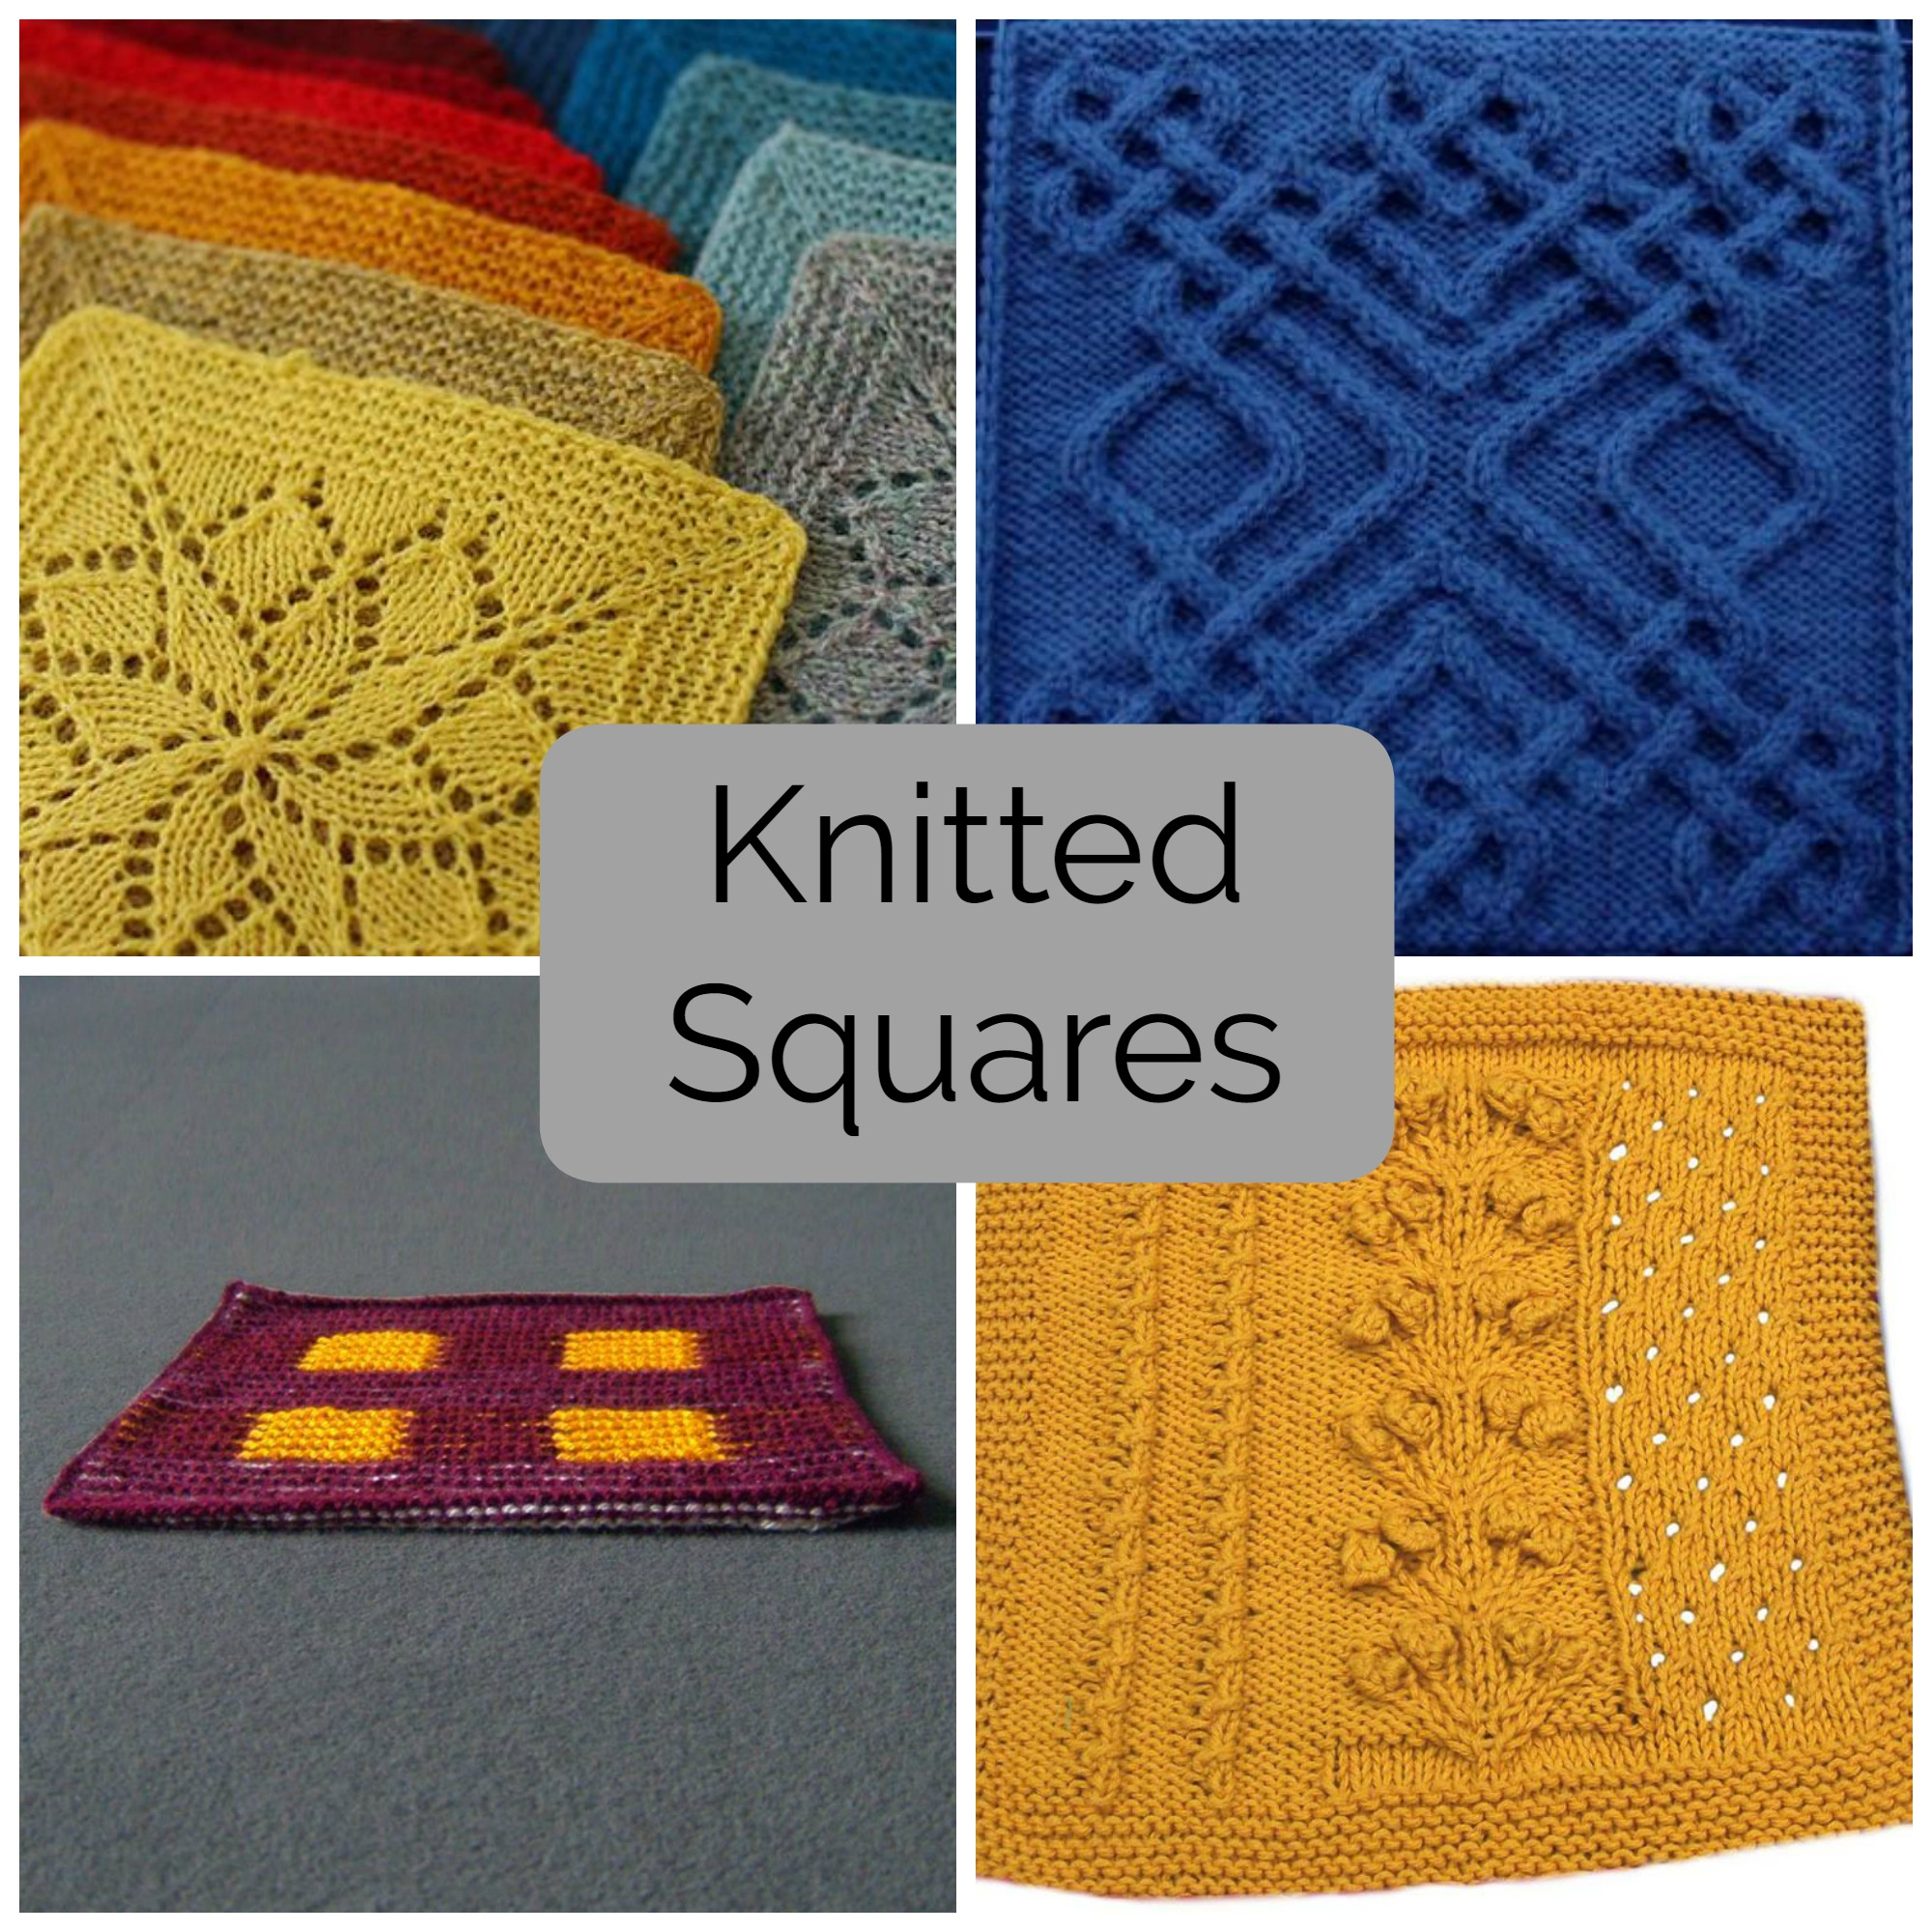 Irish Knit Baby Blanket Pattern Mix And Match These Knitted Squares For Any Project